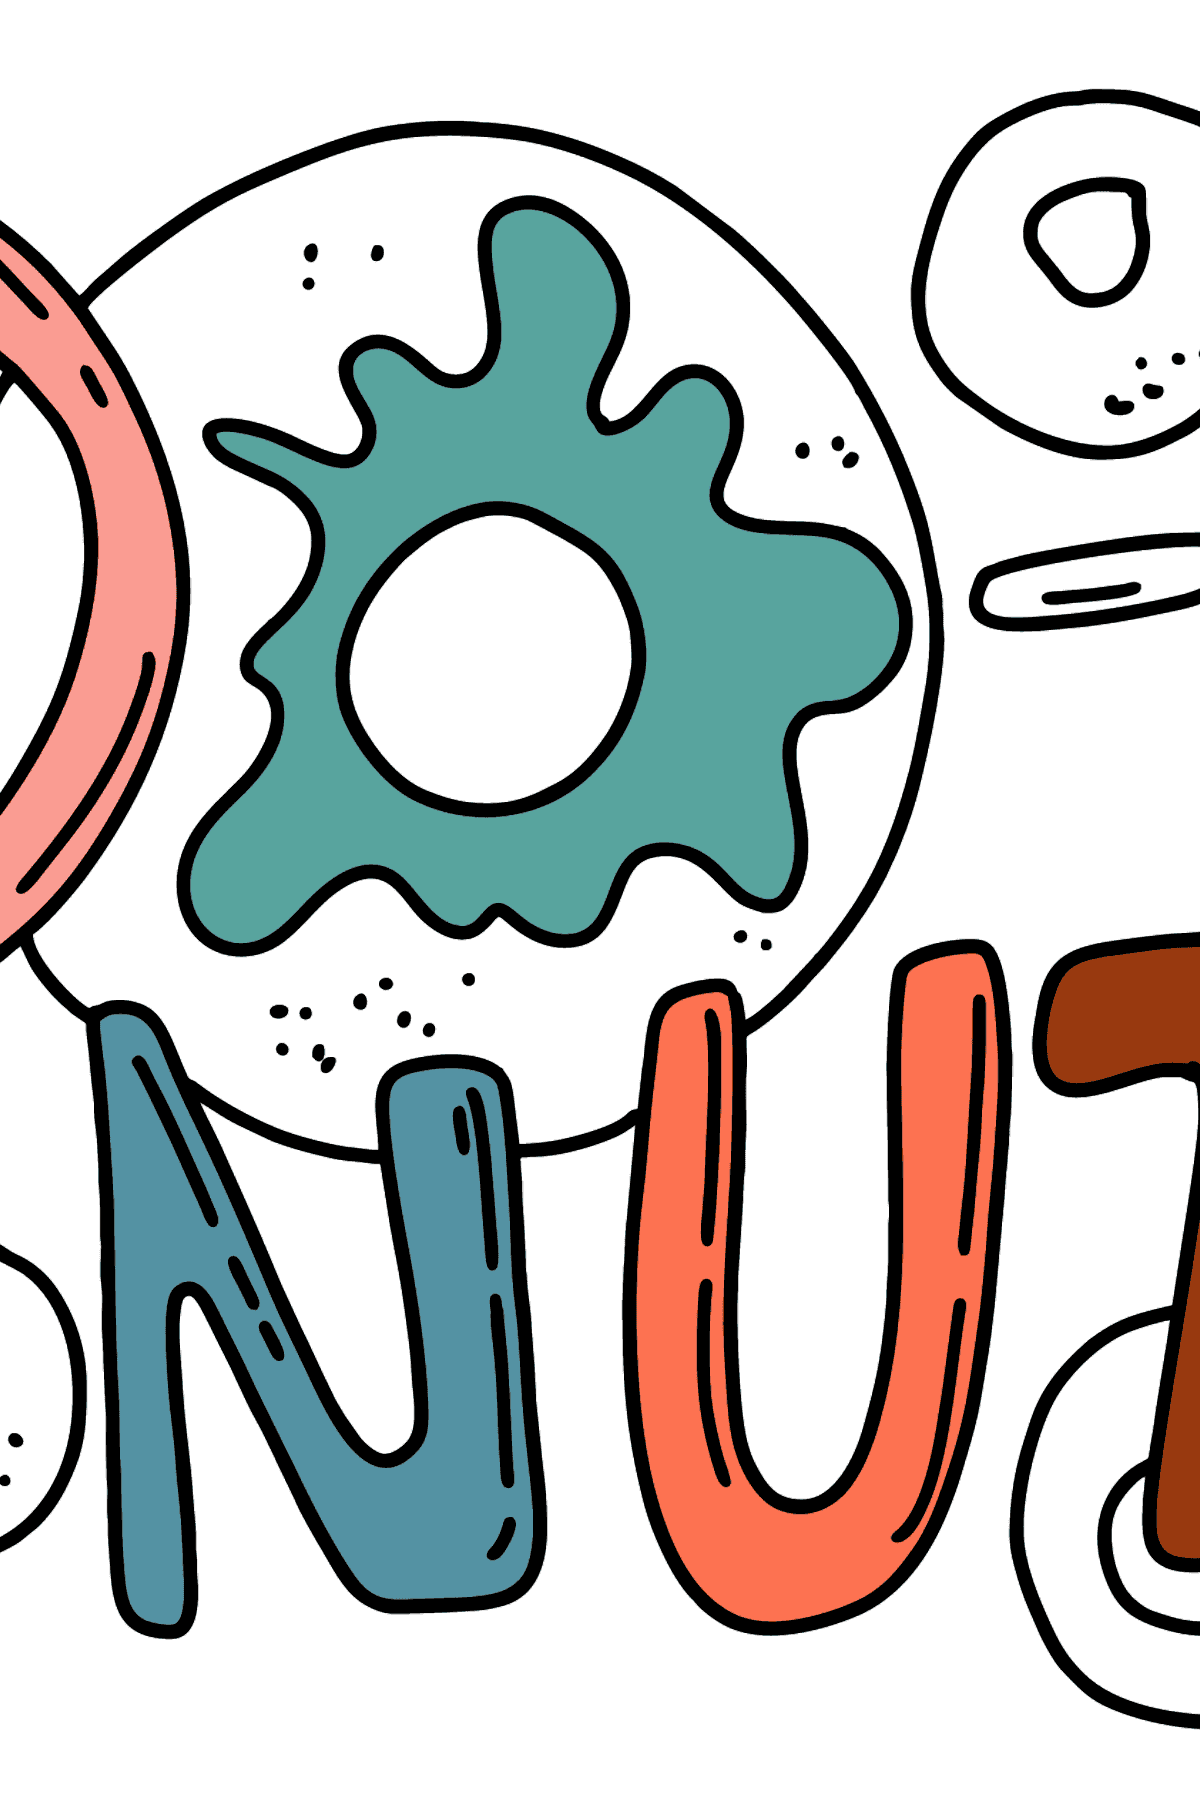 Donut lettering coloring page - Coloring Pages for Kids